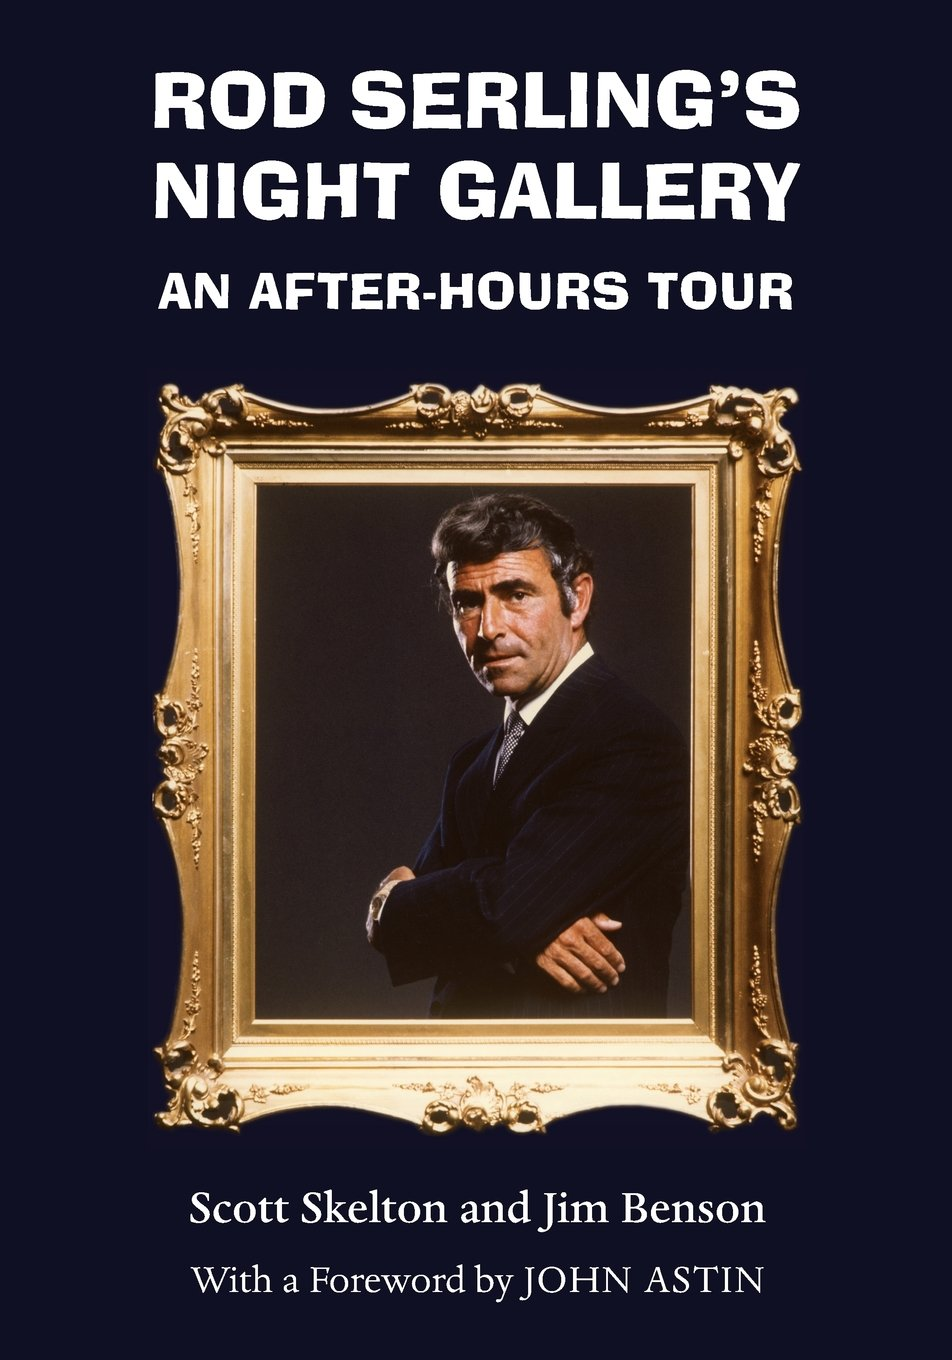 Rod Serlings Night Gallery: An After-Hours Tour Television and Popular Culture: Amazon.es: Scott Skelton, Jim Benson: Libros en idiomas extranjeros